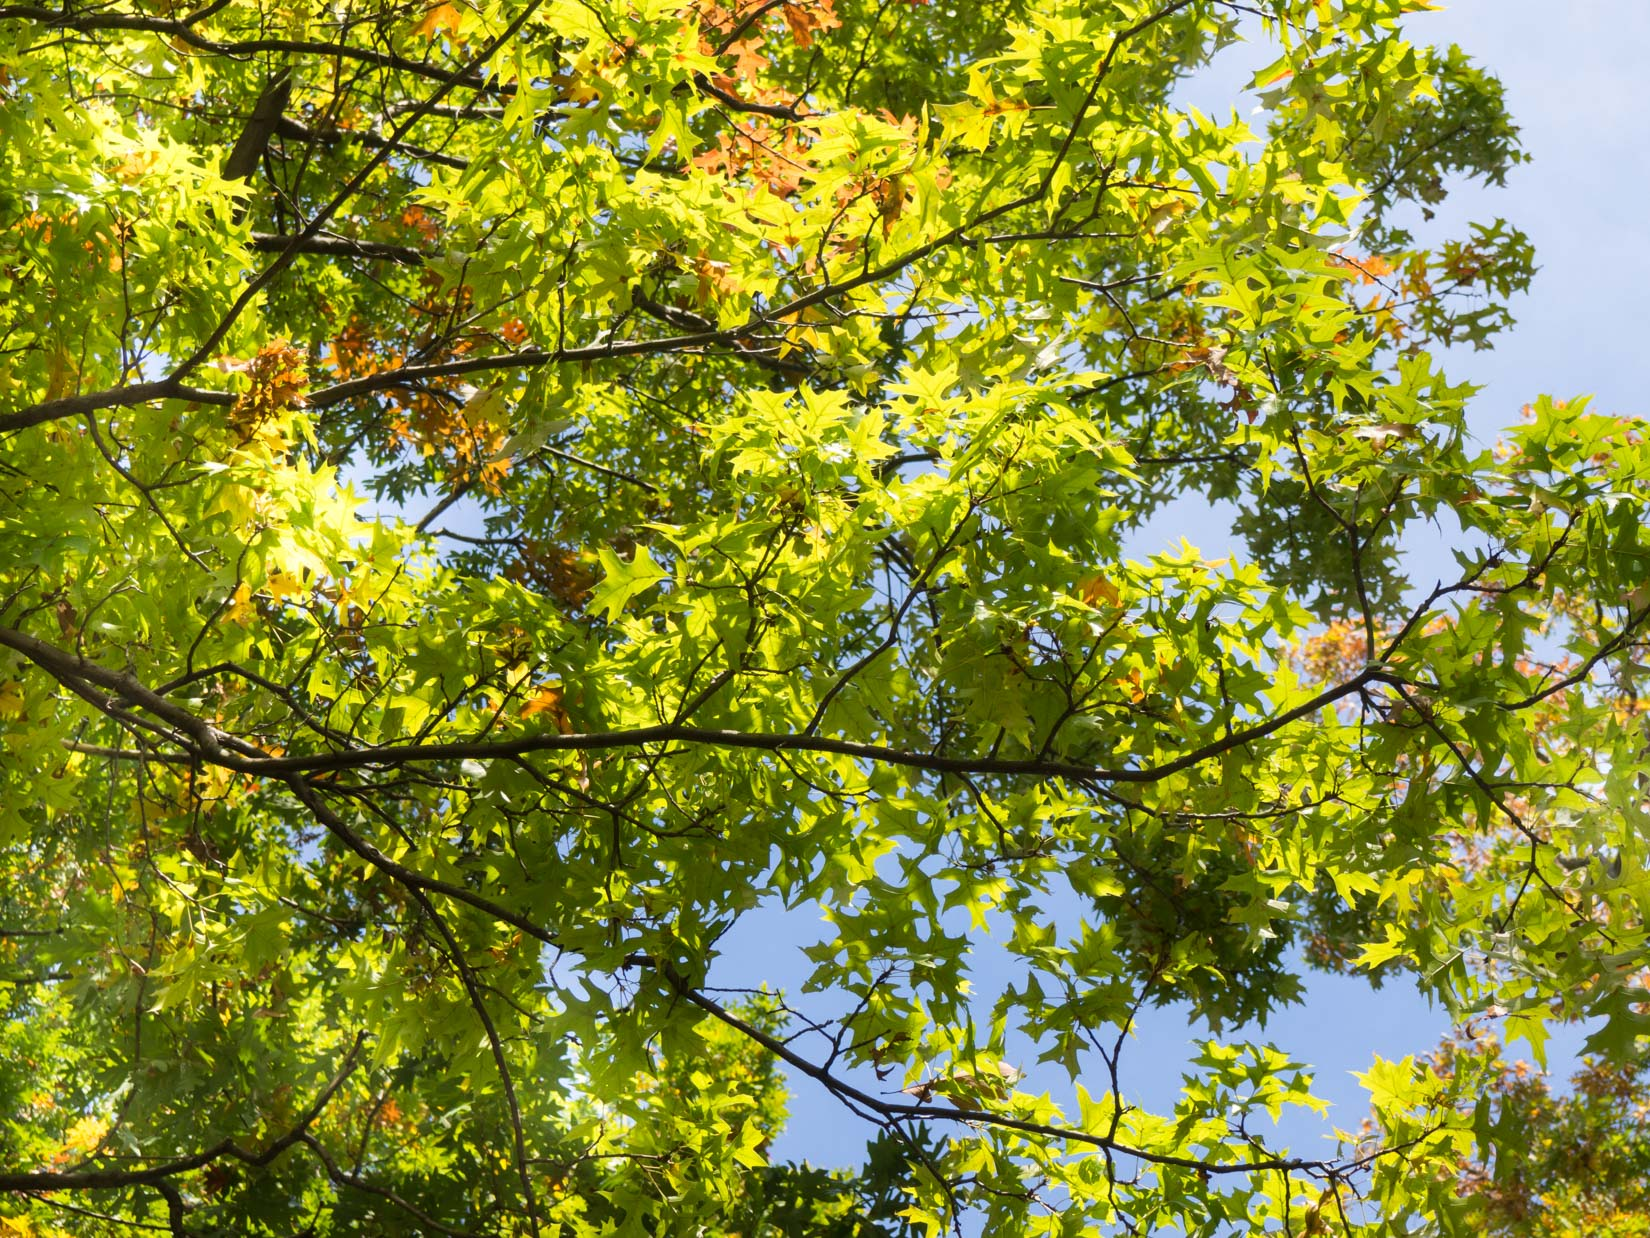 Green Leaves on Tree Branches